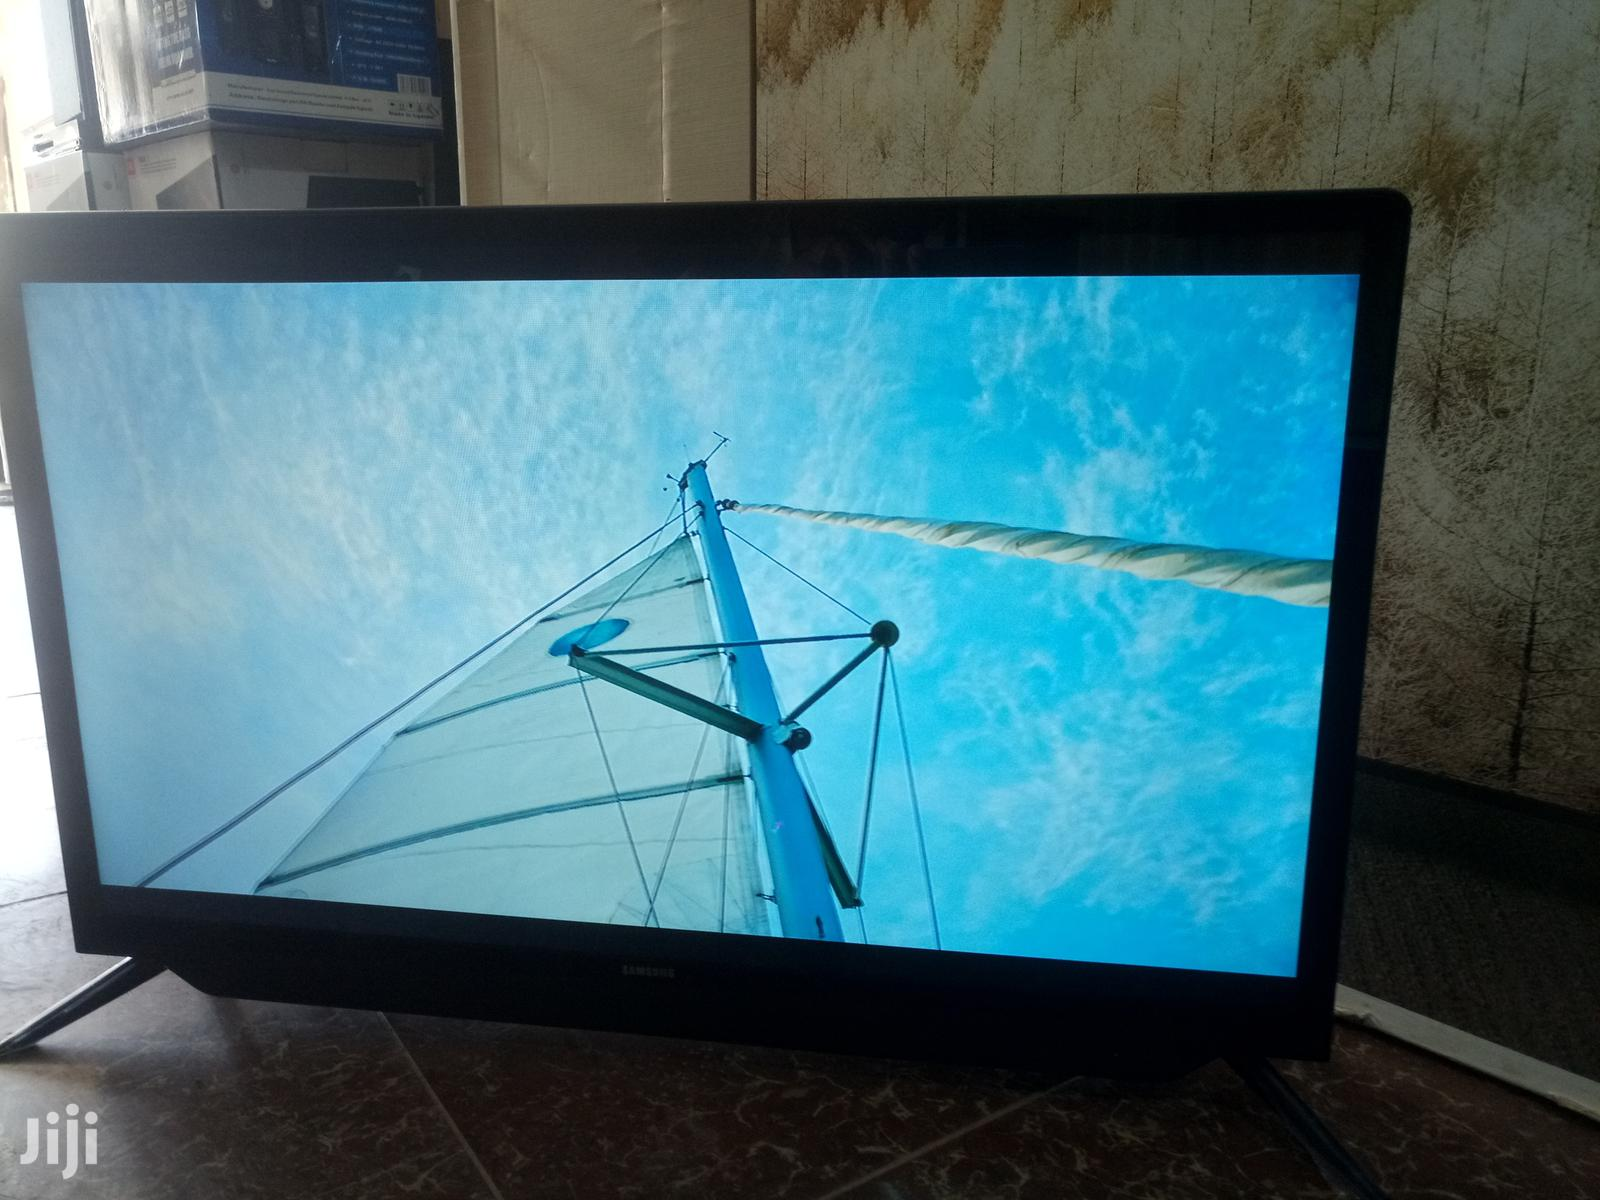 Samsung Flat Screen TV 32 Inches